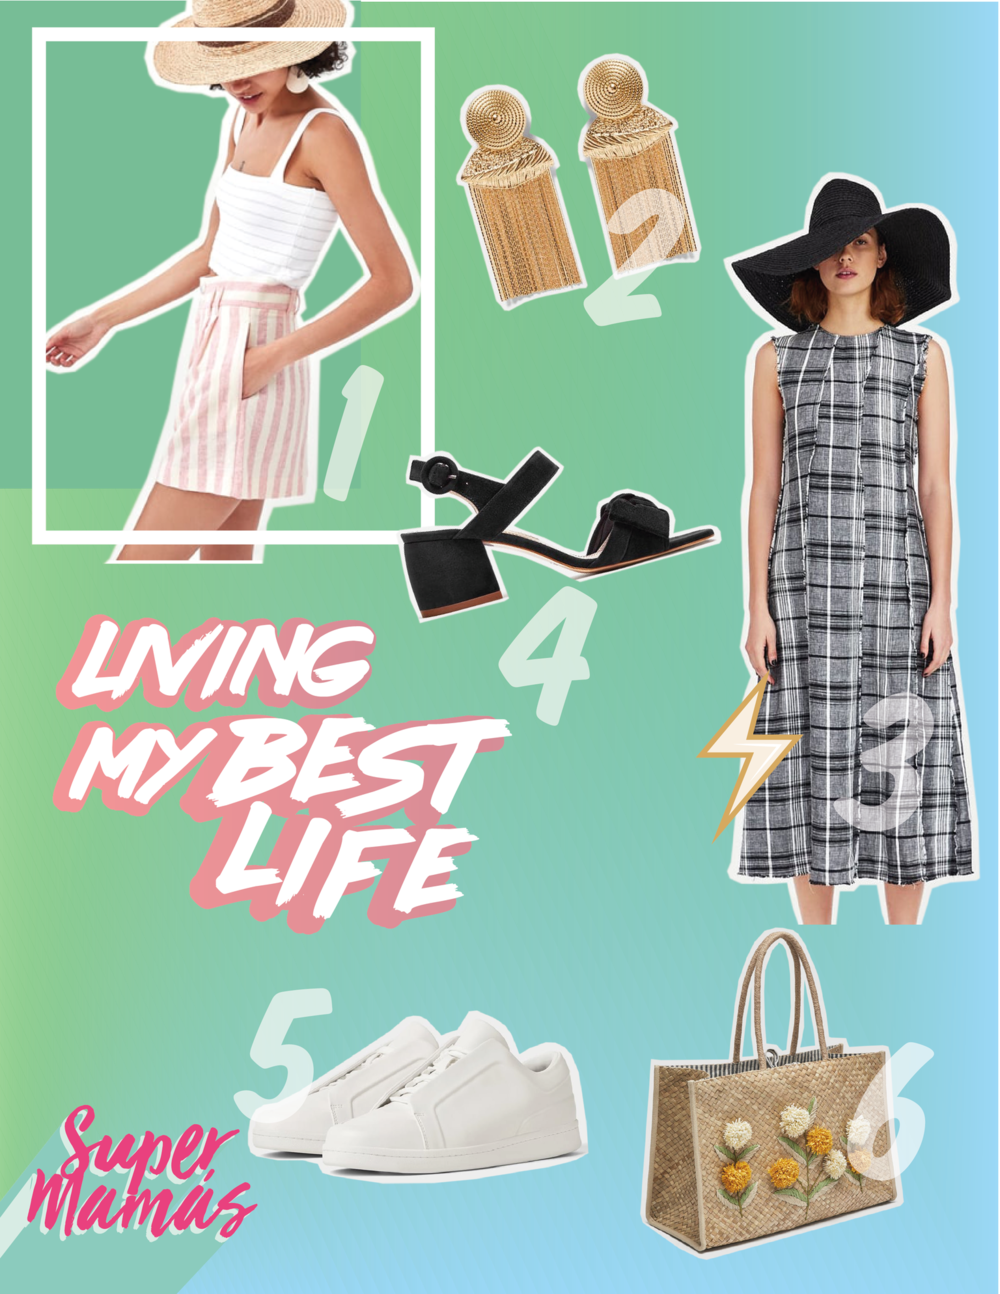 1.  STRIPED BERMUDA SHORTS /  SHIMMERY TOP WITH SCALLOPED TRIMS  /  2.  EARRINGS WITH CHAIN FRINGING  3.  CHECK LINEN DRESS  4.  HIGH HEEL LEATHER SANDALS WITH RIBBON  5.  WHITE SNEAKERS  6.  FLORAL TOTE BAG